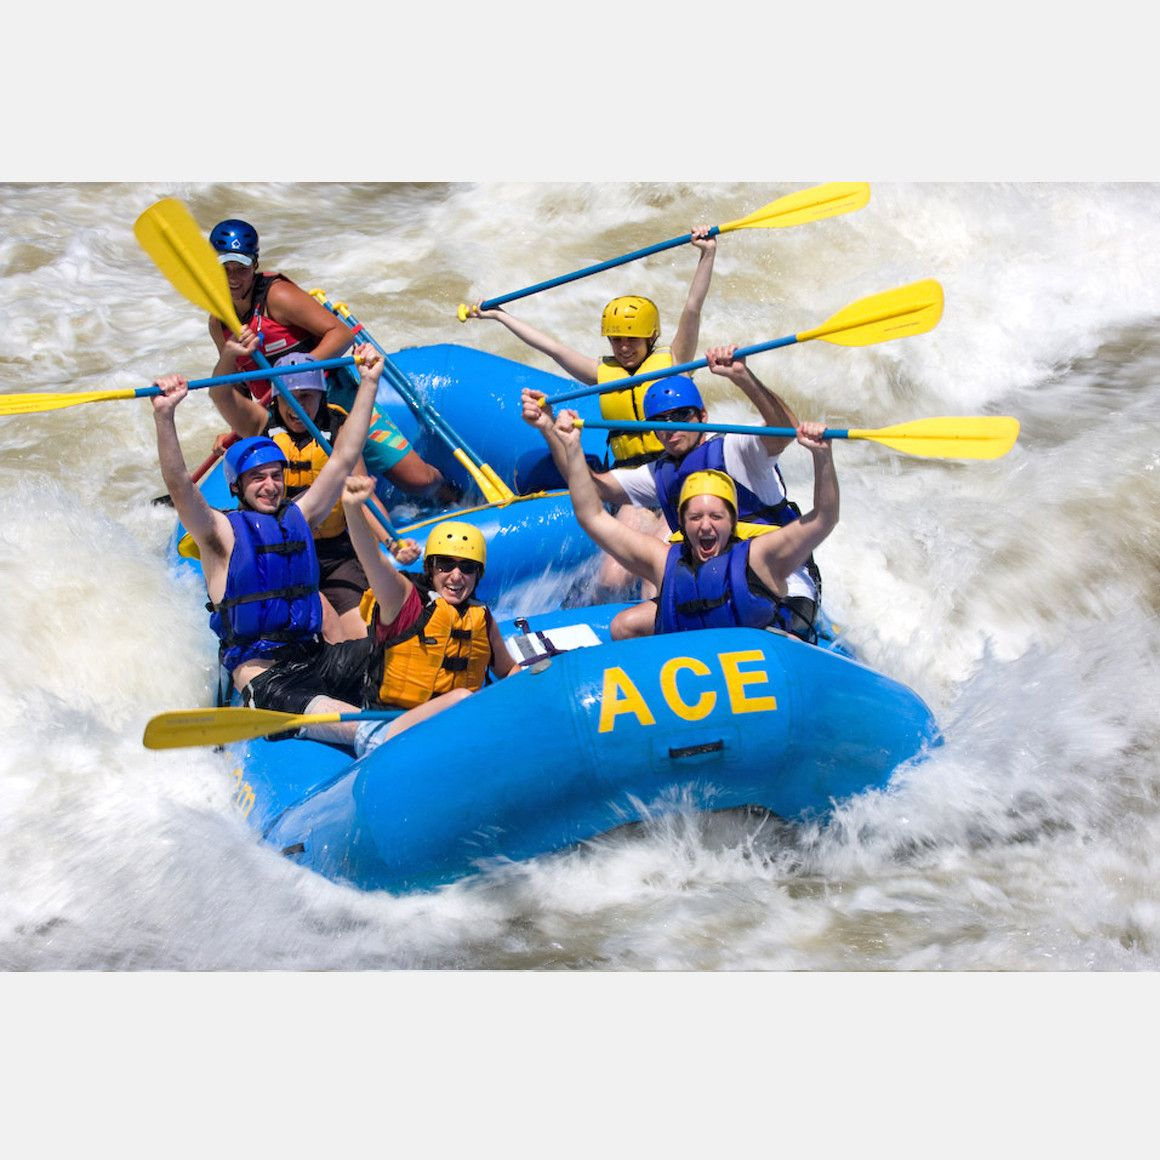 New River Gorge Rafting Ace